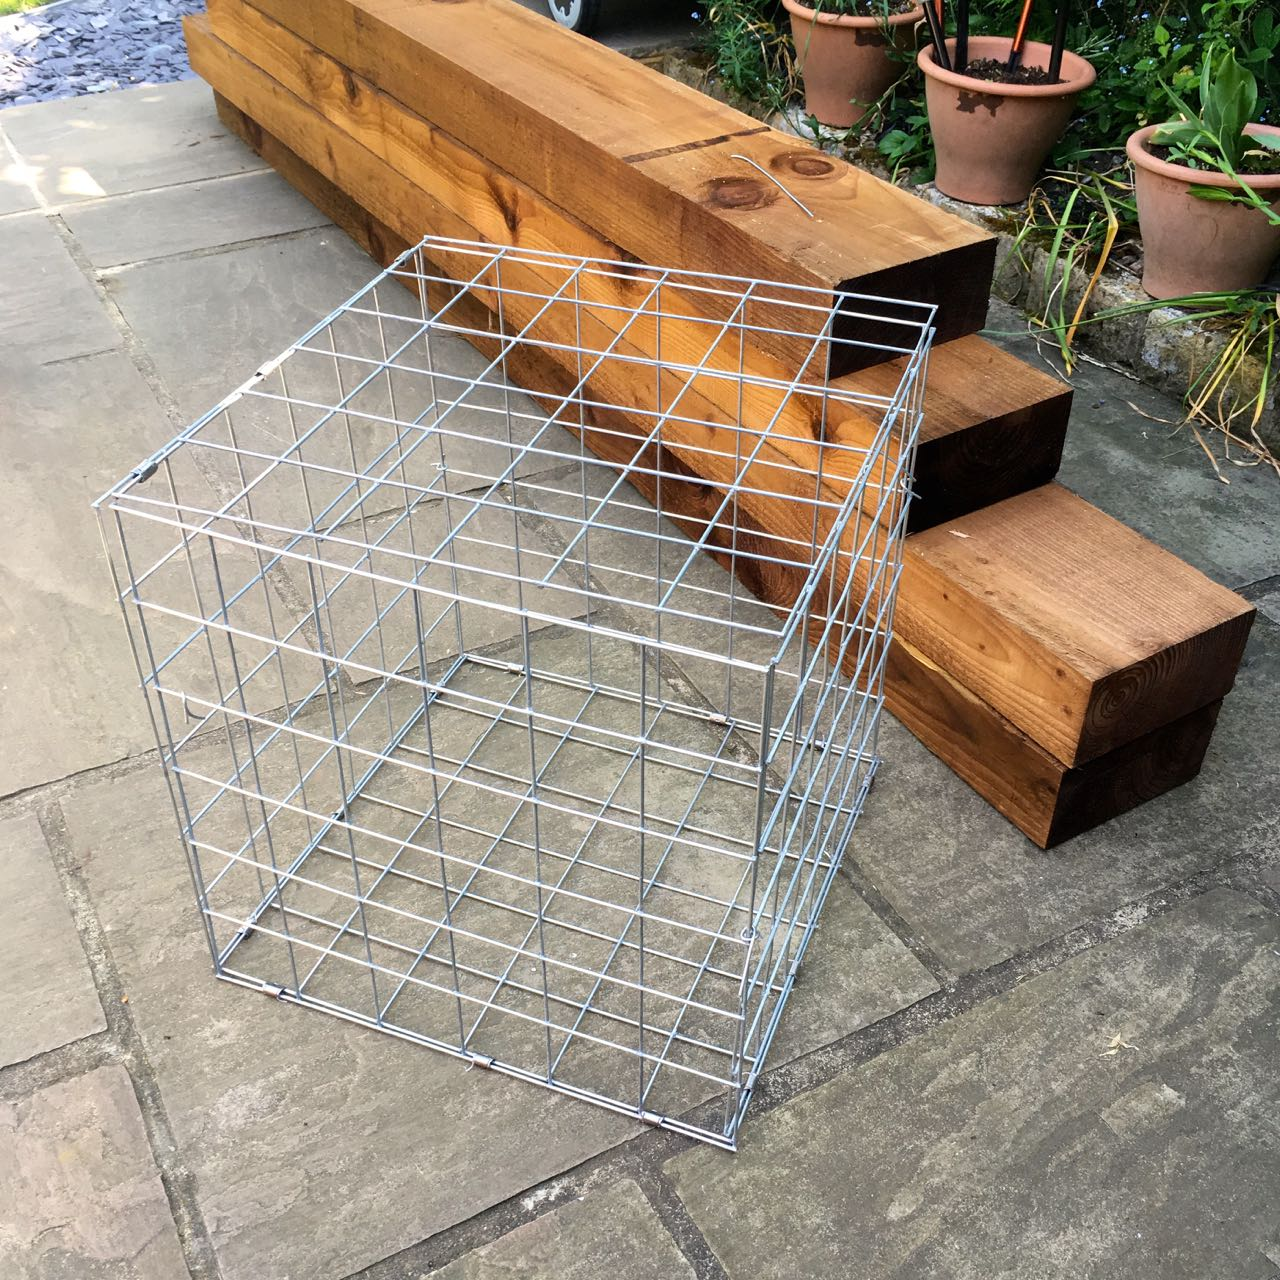 A completed gabion basket, how many more to go?